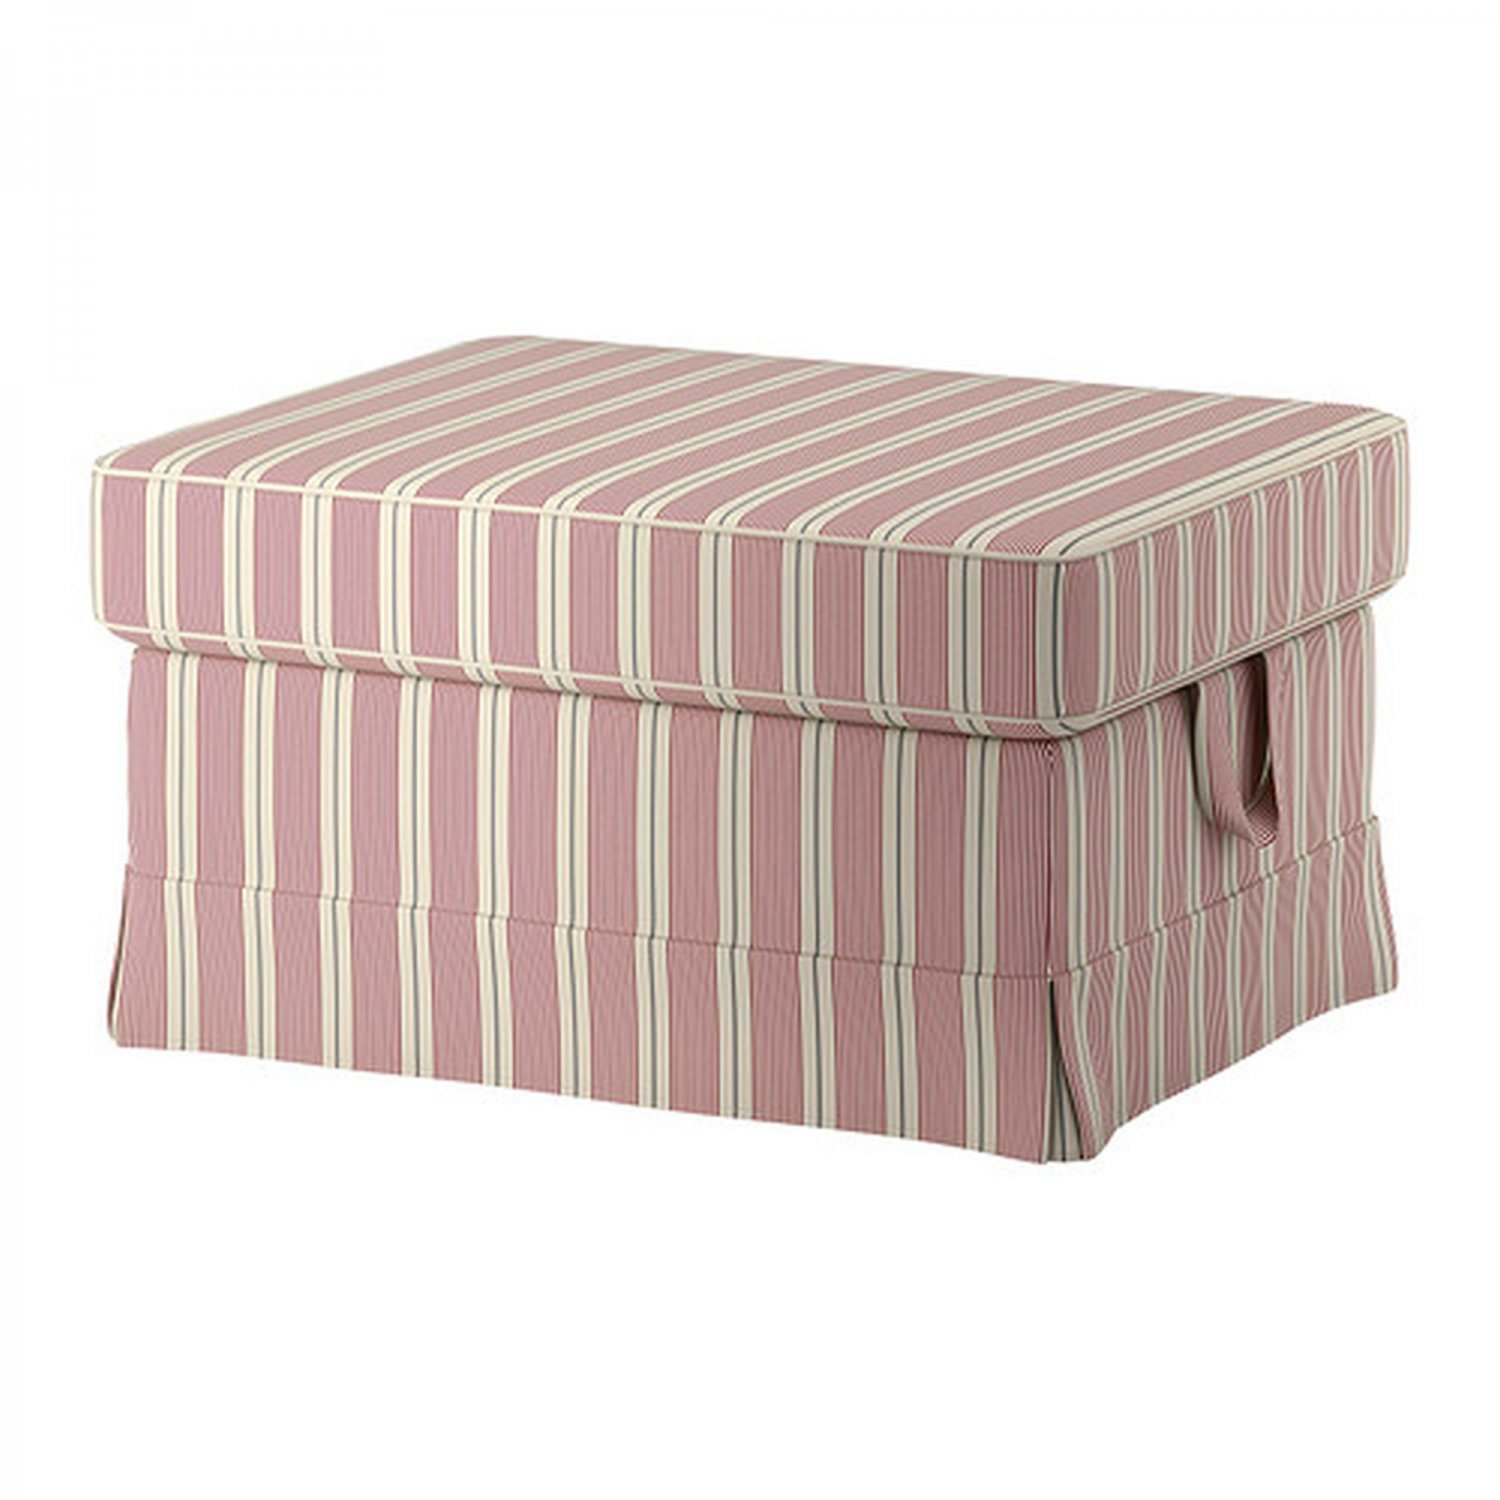 IKEA Ektorp Footstool SLIPCOVER Ottoman Cover MOBACKA Ticking Stripes RED Beige